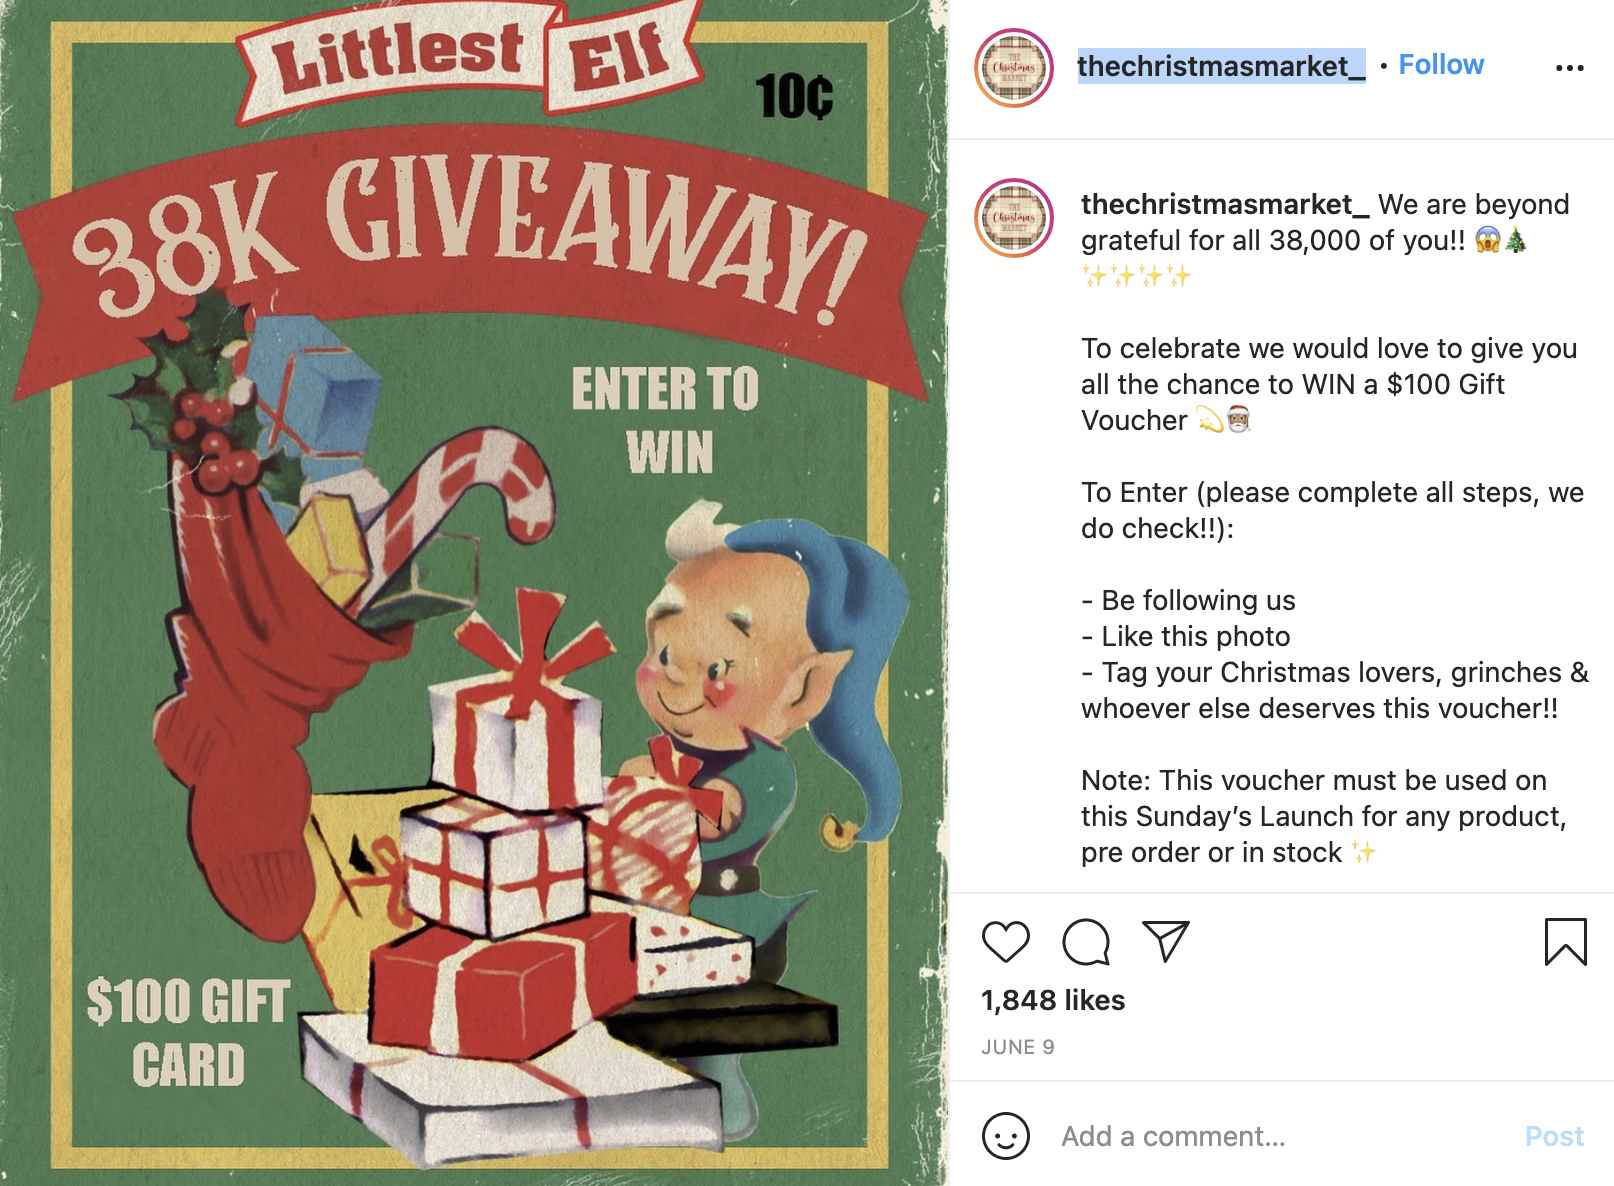 The Christmas Market Instagram Giveaway